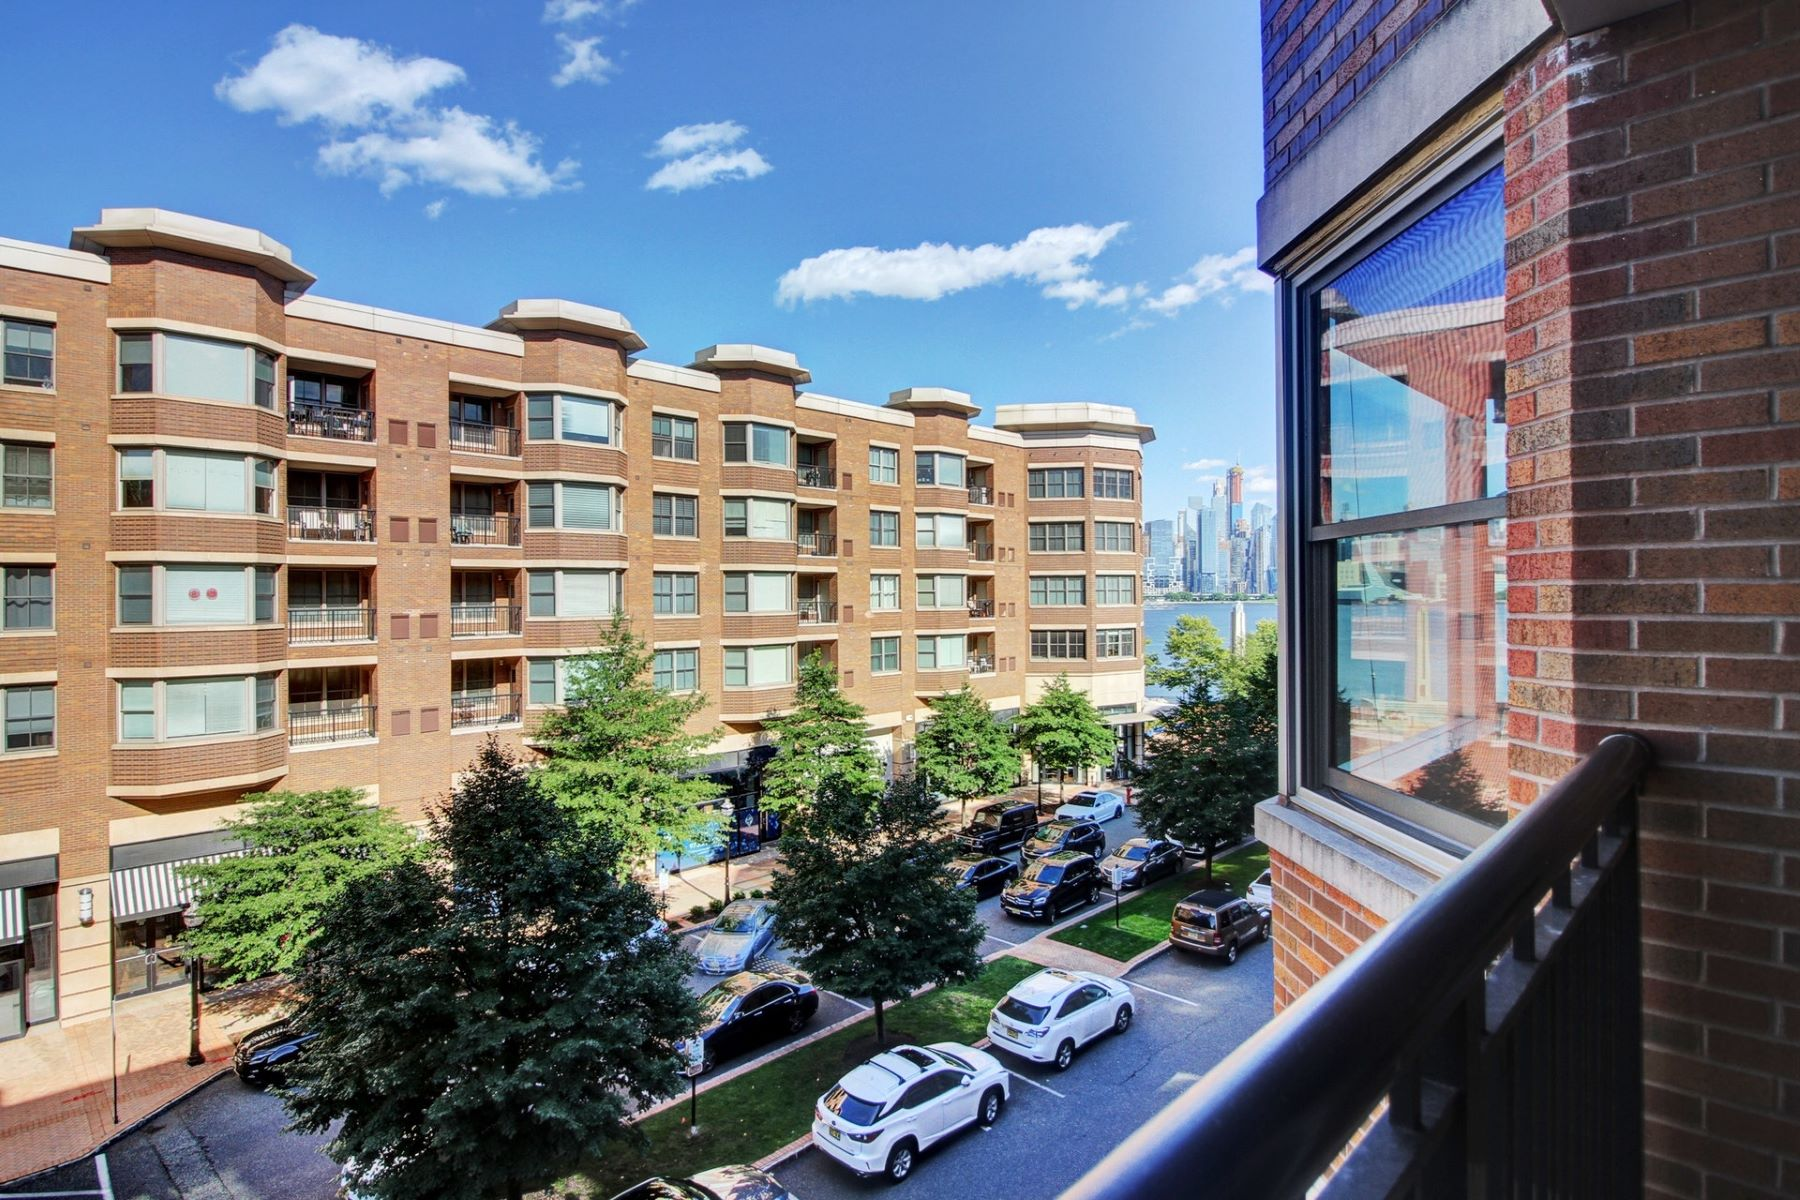 Apartment for Rent at Discover Pure Luxury in this North facing 2 Bedroom / 2 Bathroom Home 22 Ave At Port Imperial #0308, West New York, New Jersey 07093 United States